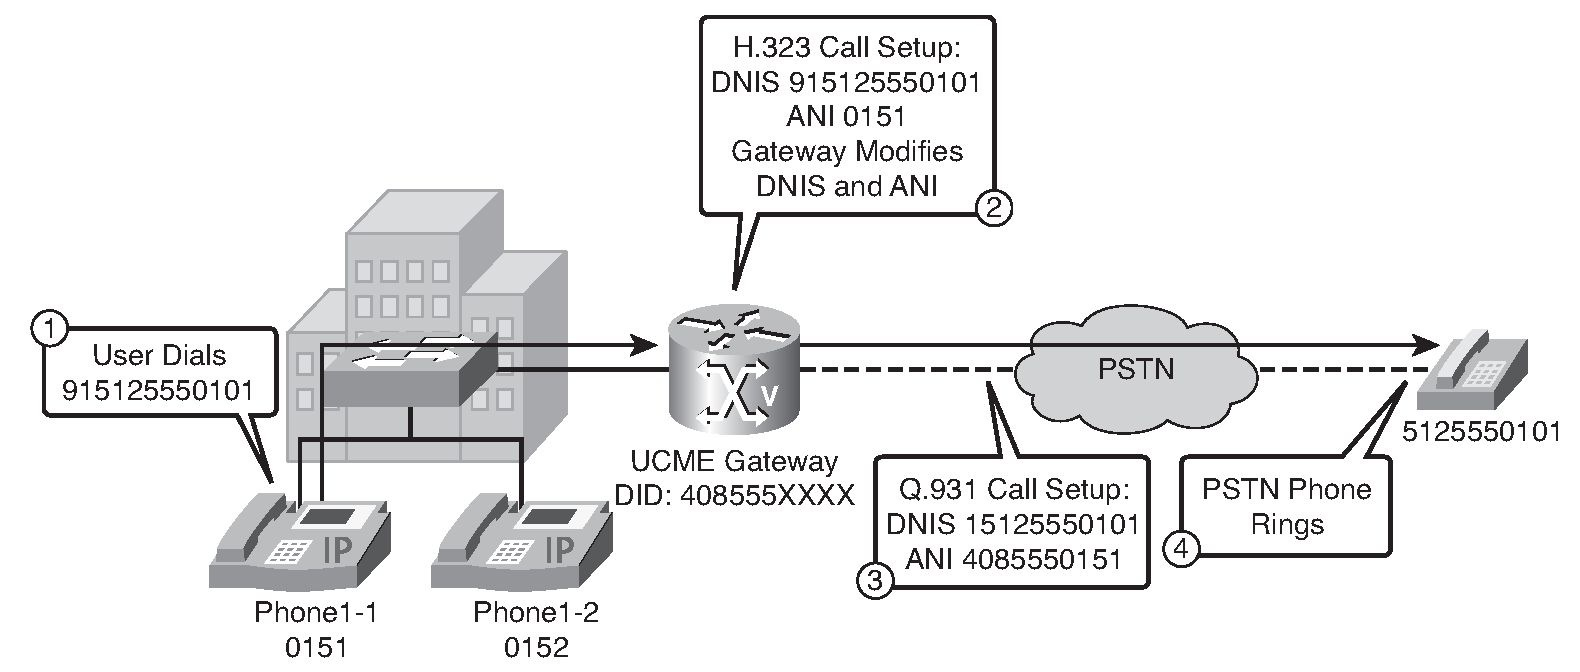 pstn call flow diagram electric baseboard heat wiring introducing dial plans identifying plan characteristics outbound calls